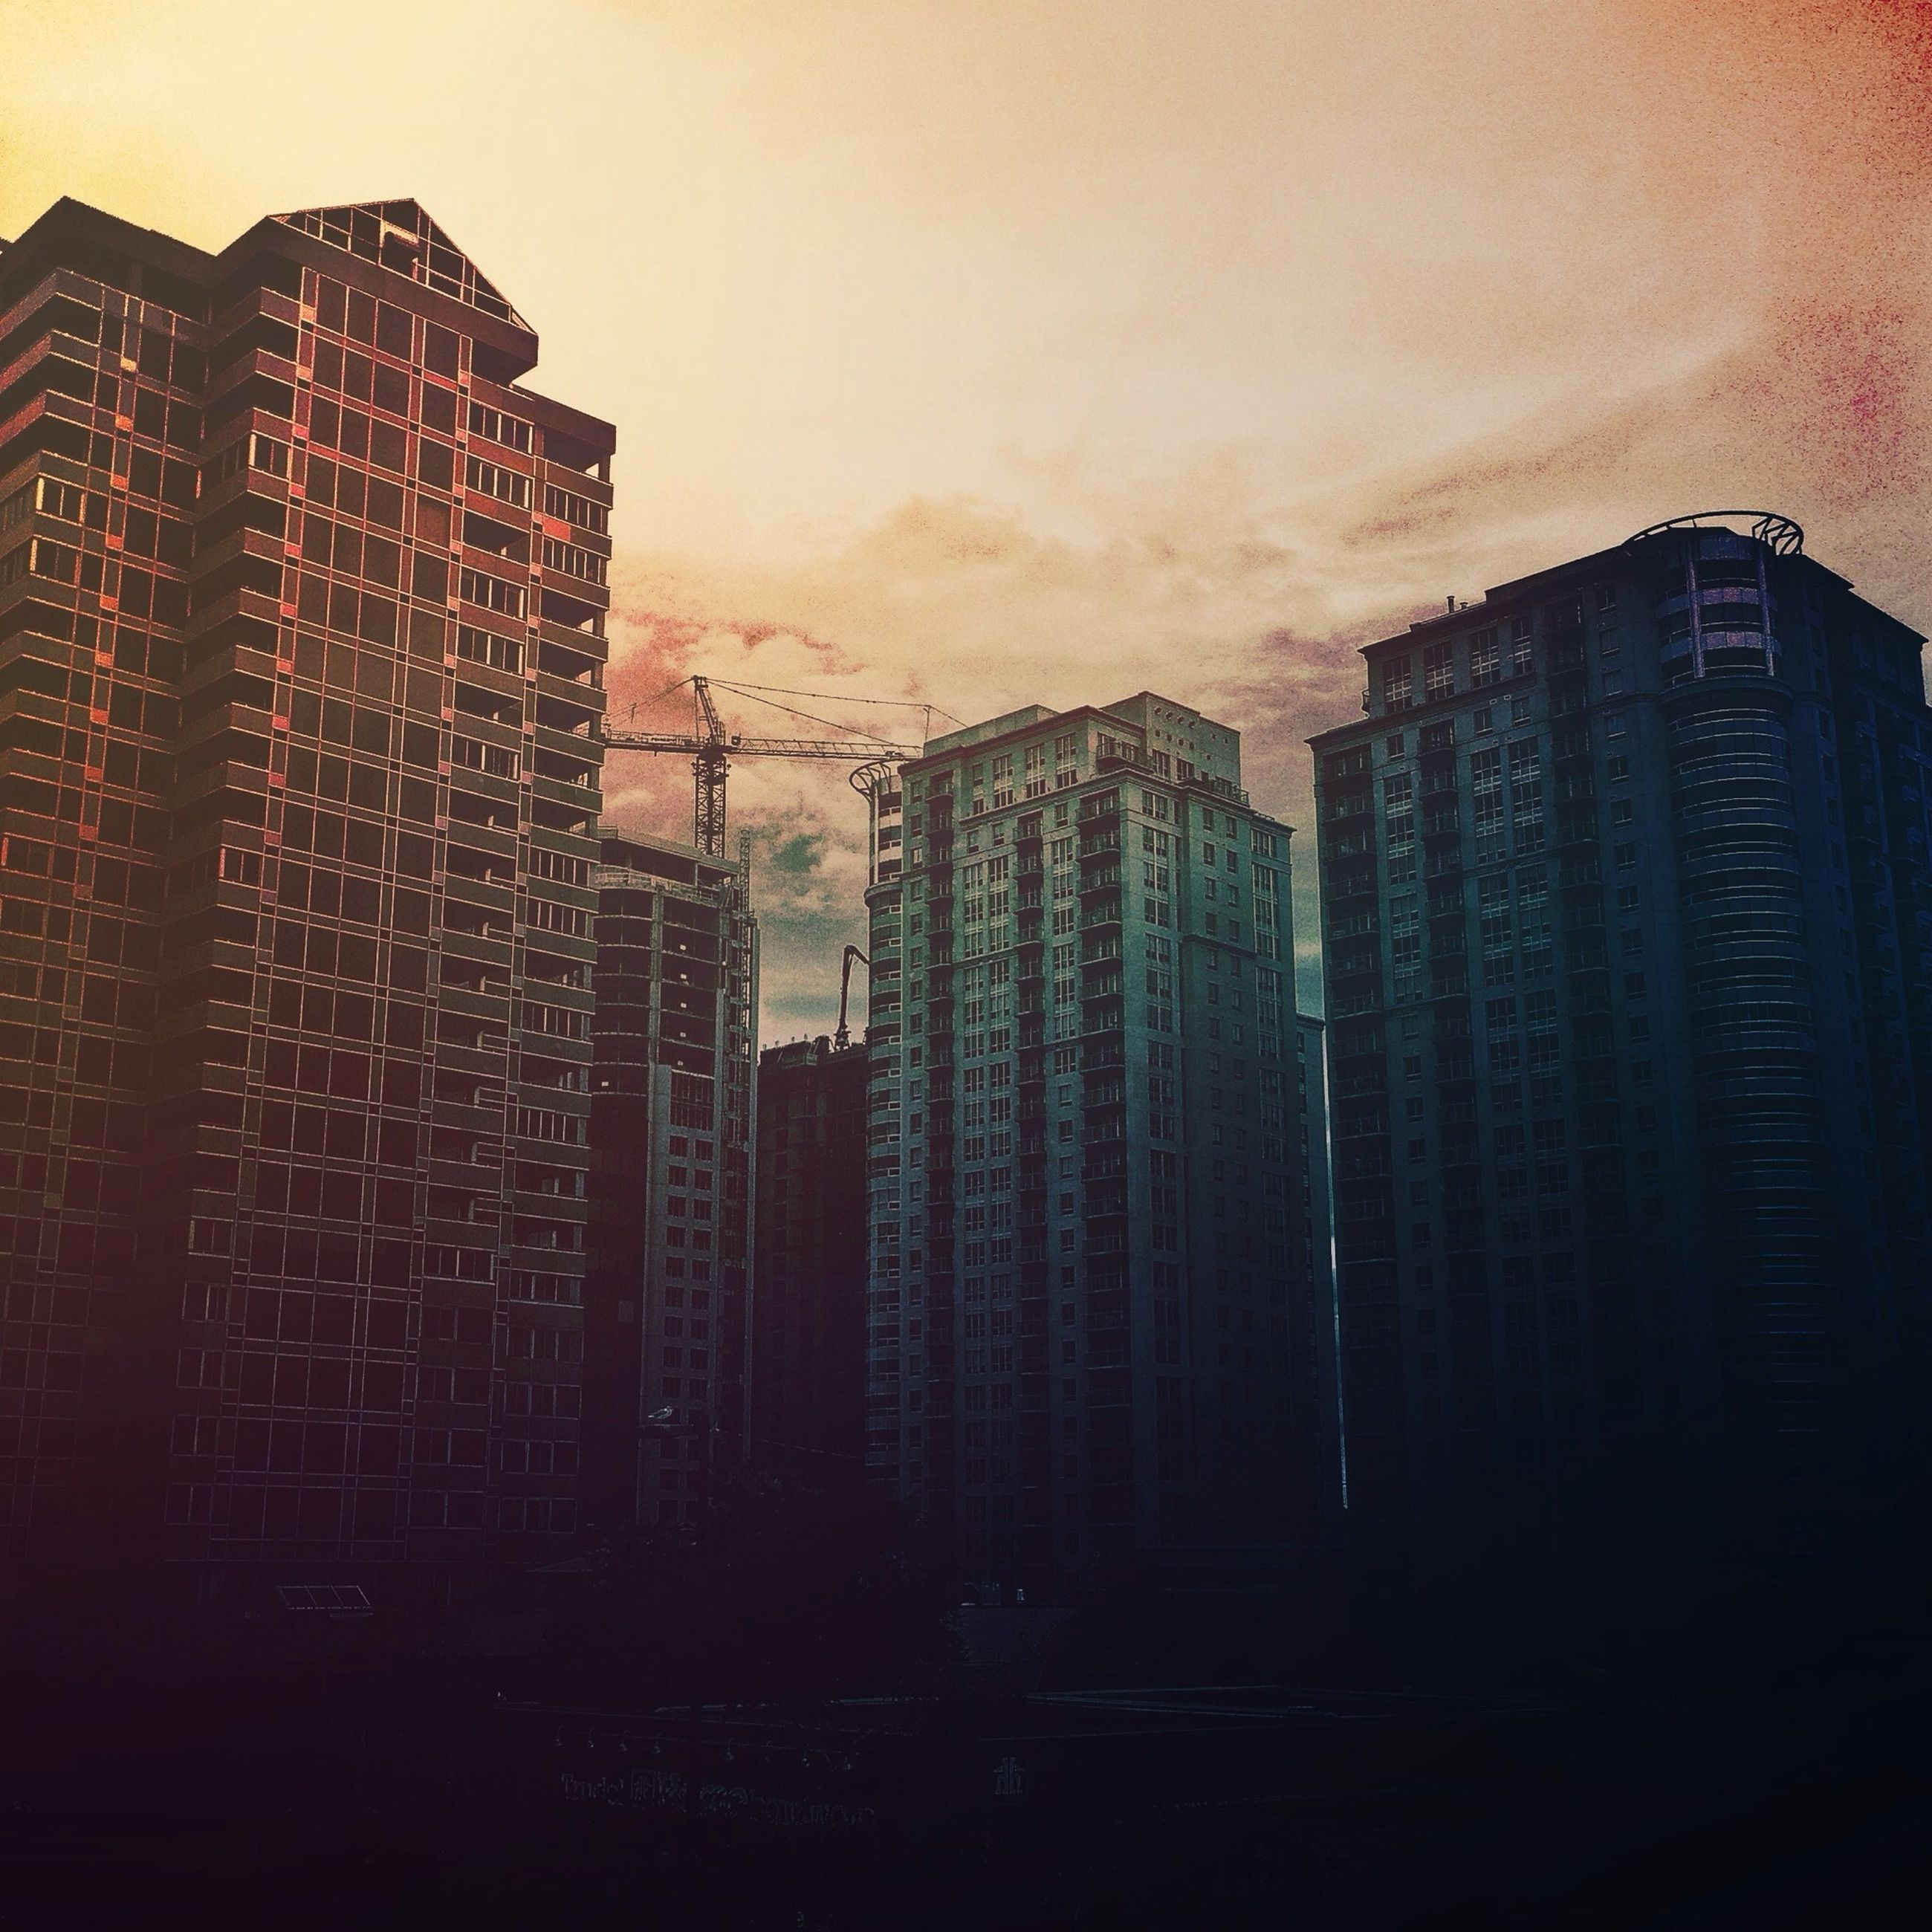 building exterior, architecture, built structure, city, sunset, skyscraper, sky, tall - high, tower, silhouette, cityscape, office building, modern, building, urban skyline, development, orange color, dusk, residential building, no people